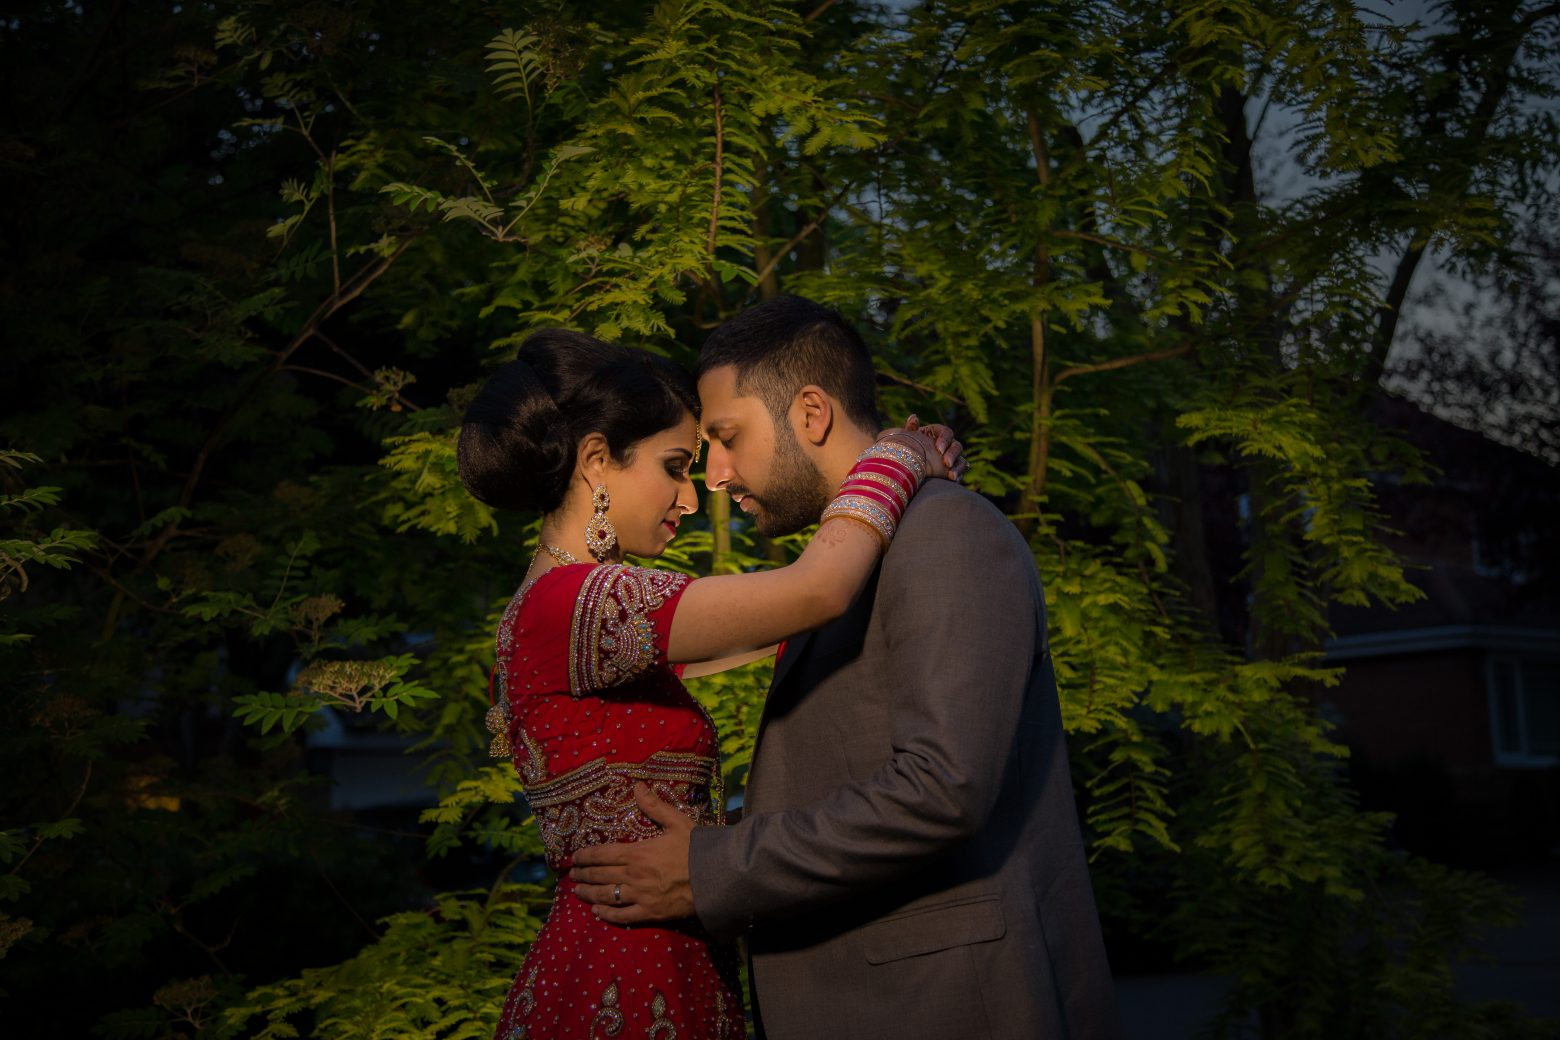 Indian wedding photography and videography packages